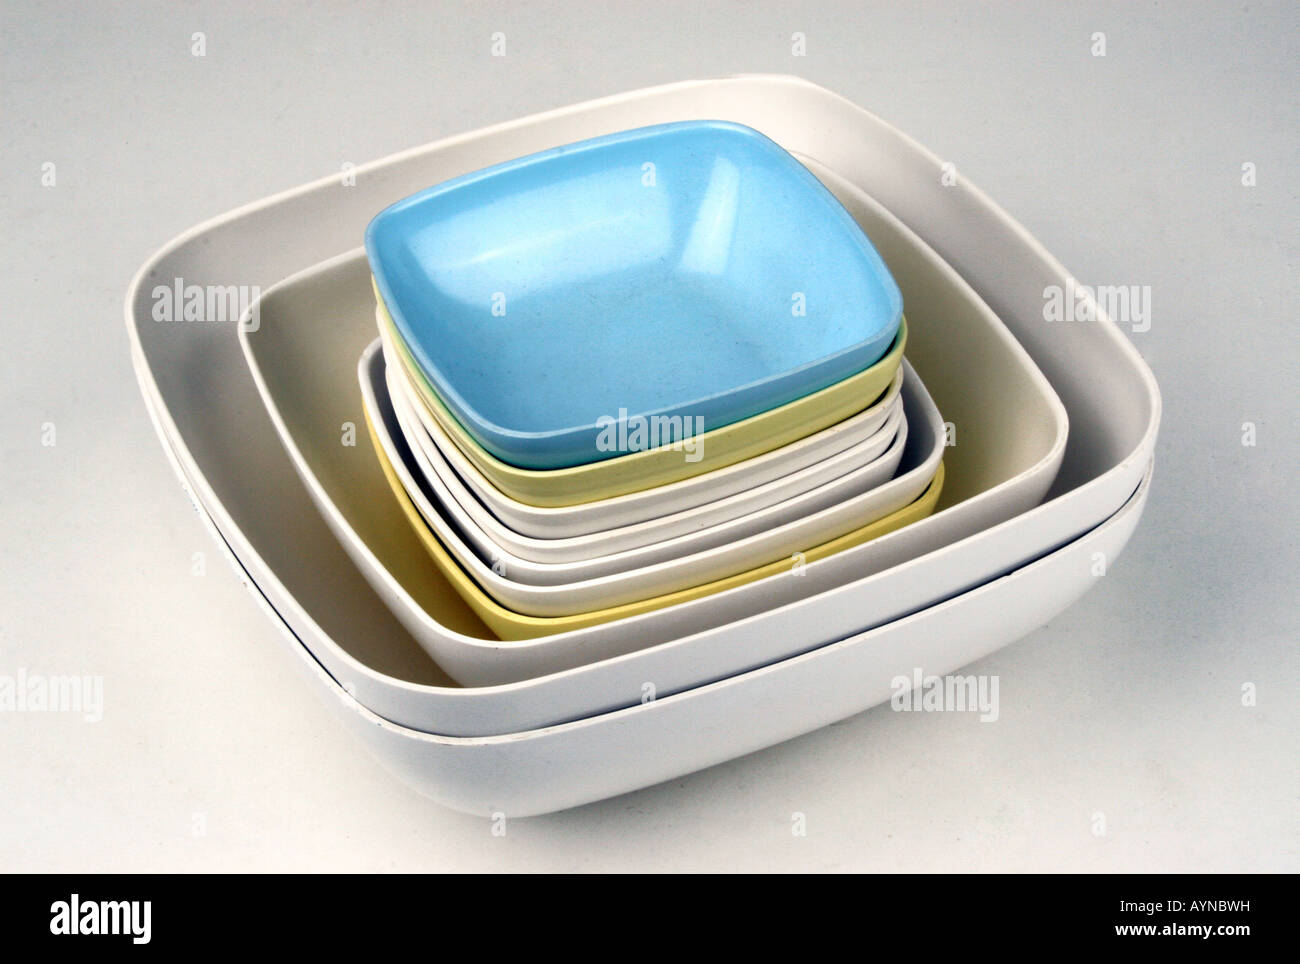 Pieces Of Melamine Resin Set Fot Table And Kitchen Stock Photos ...